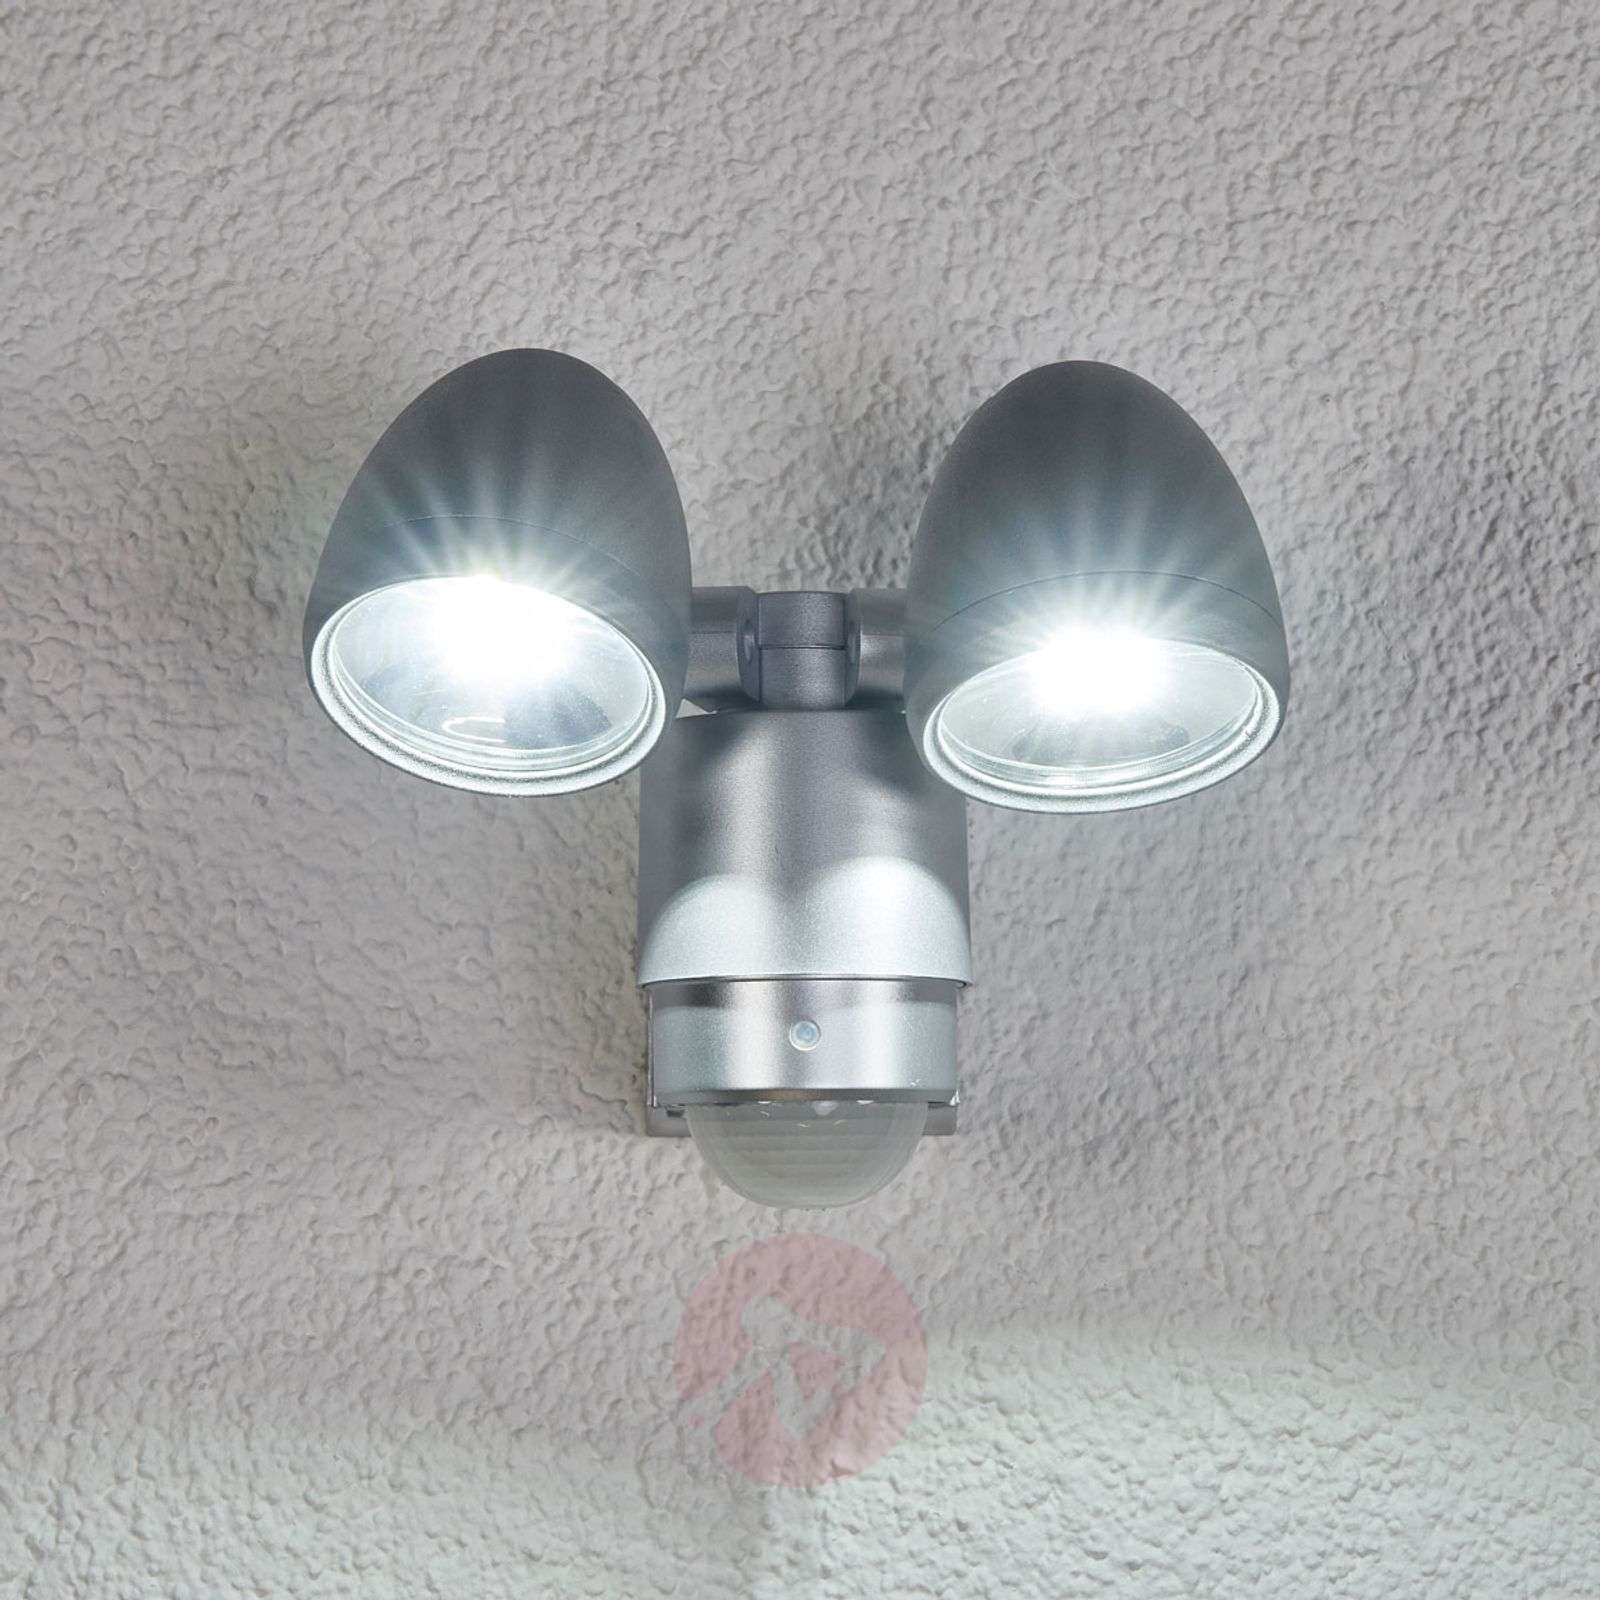 RADIAL Two Lamp LED Exterior Wall Spot-4014128-02